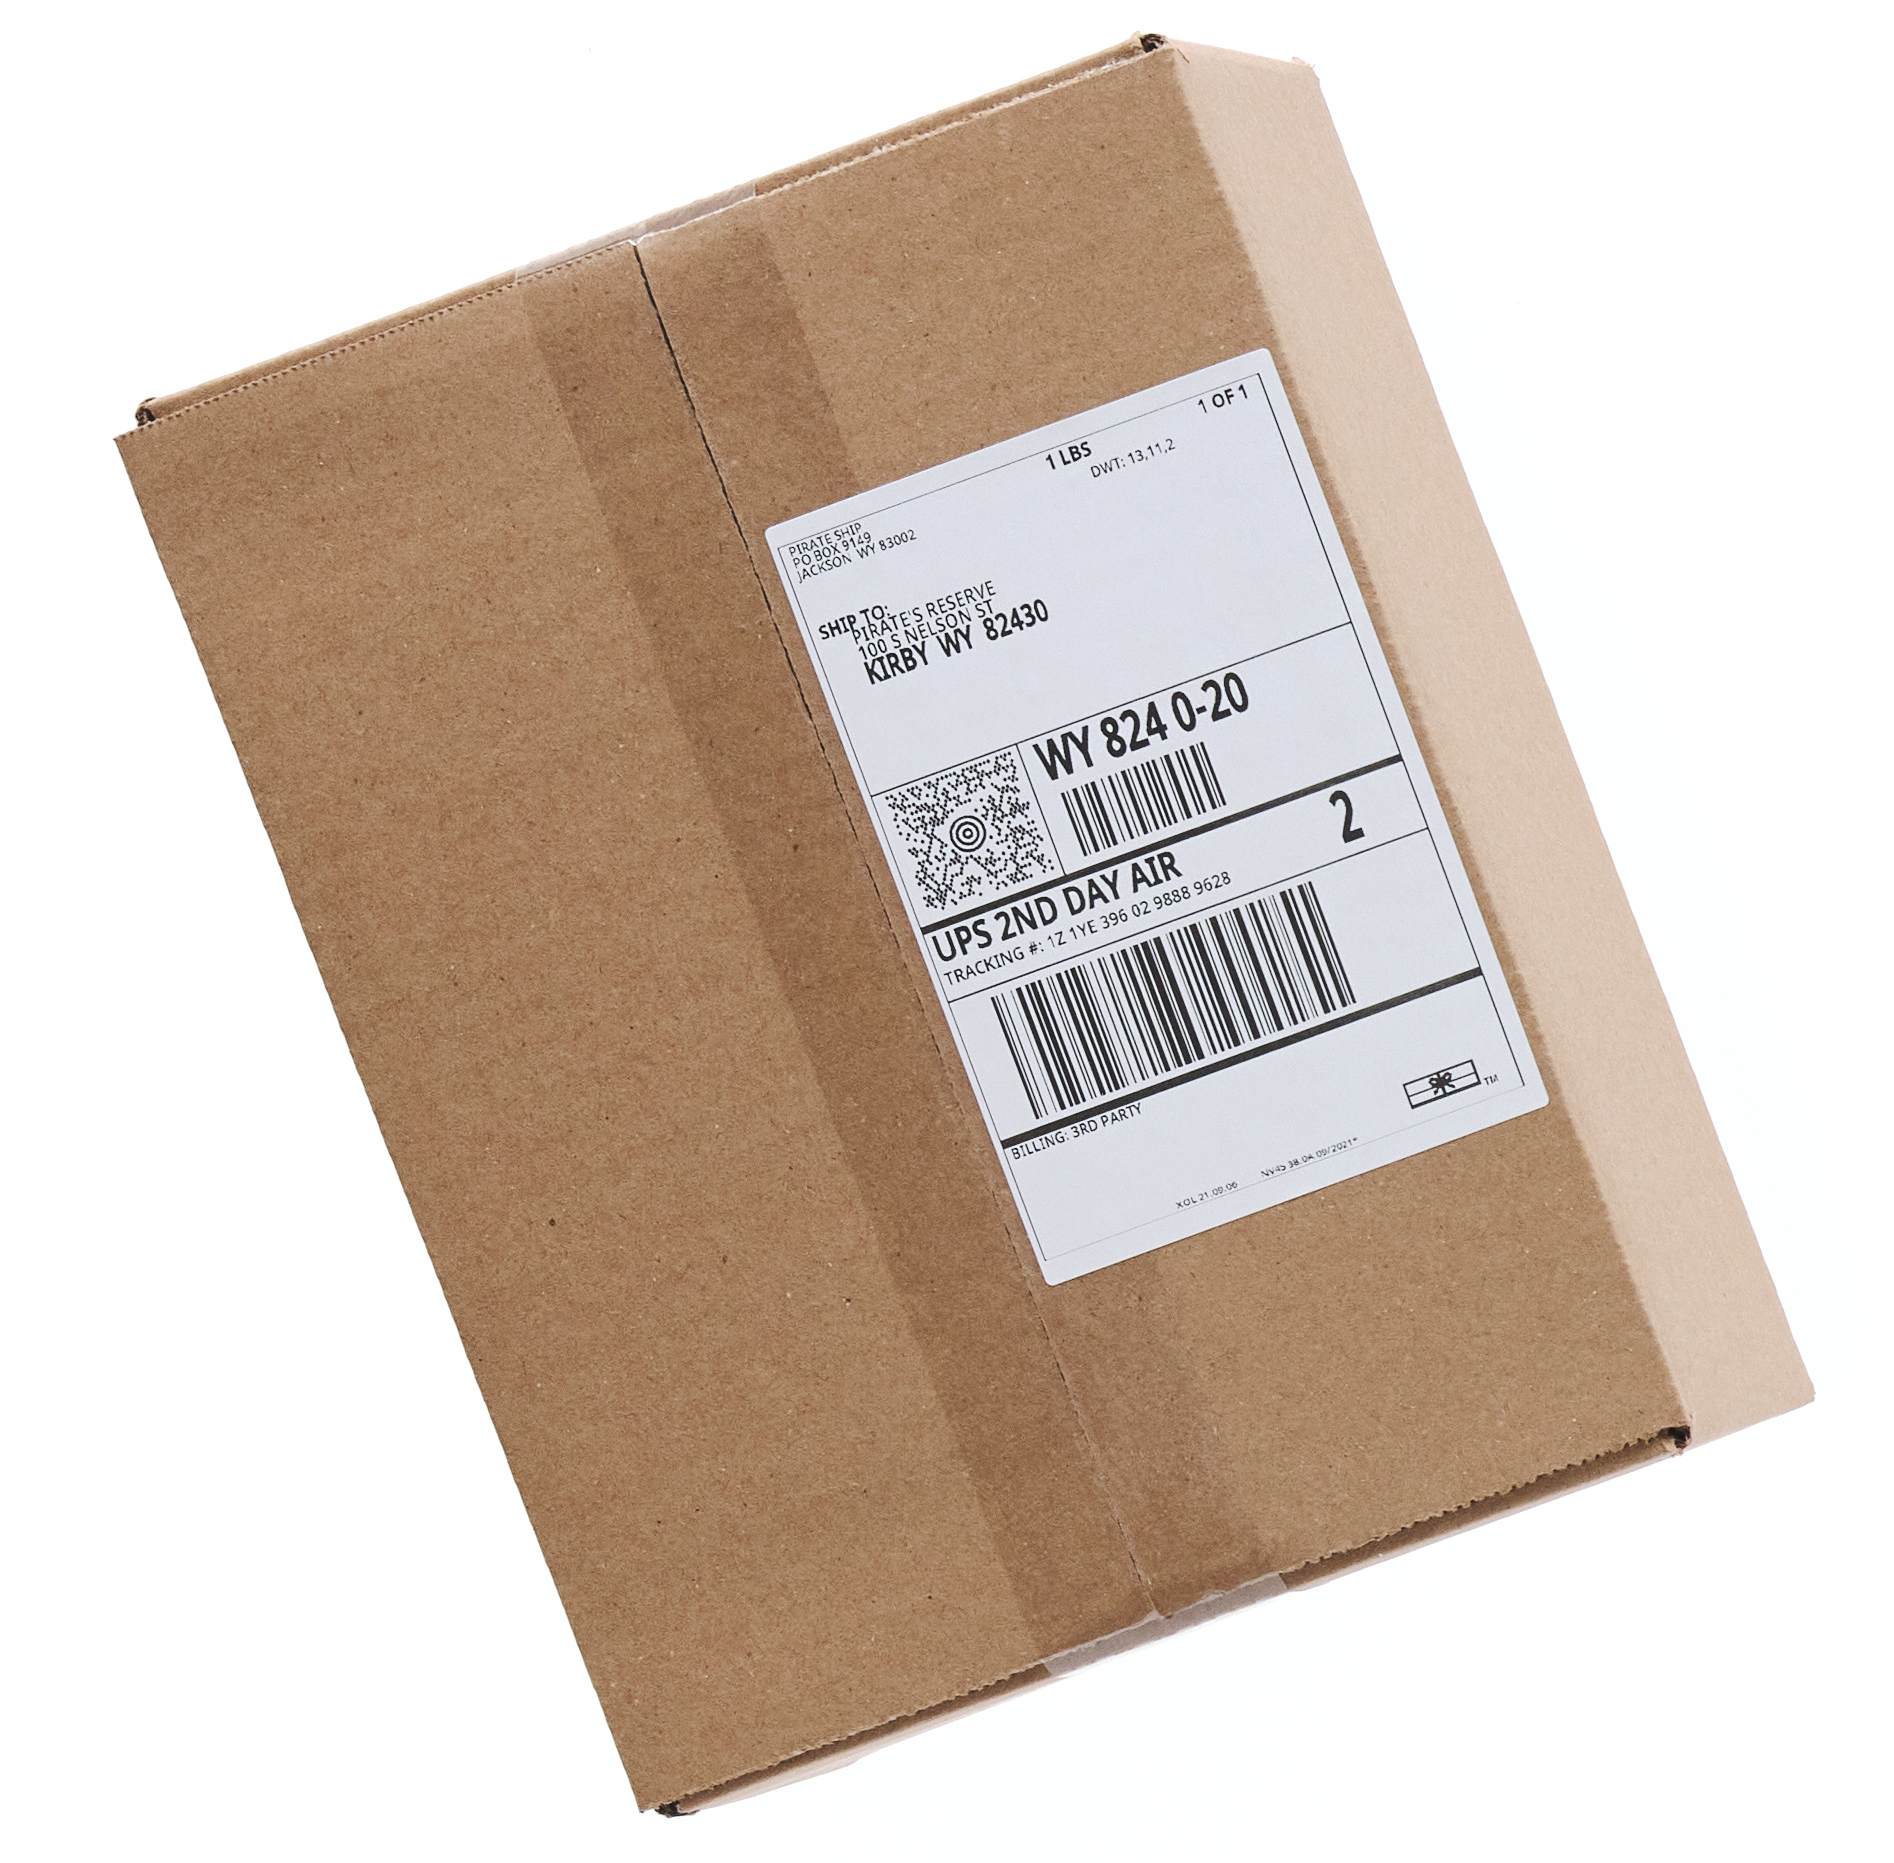 UPS 2nd Day Air shipping label on a package